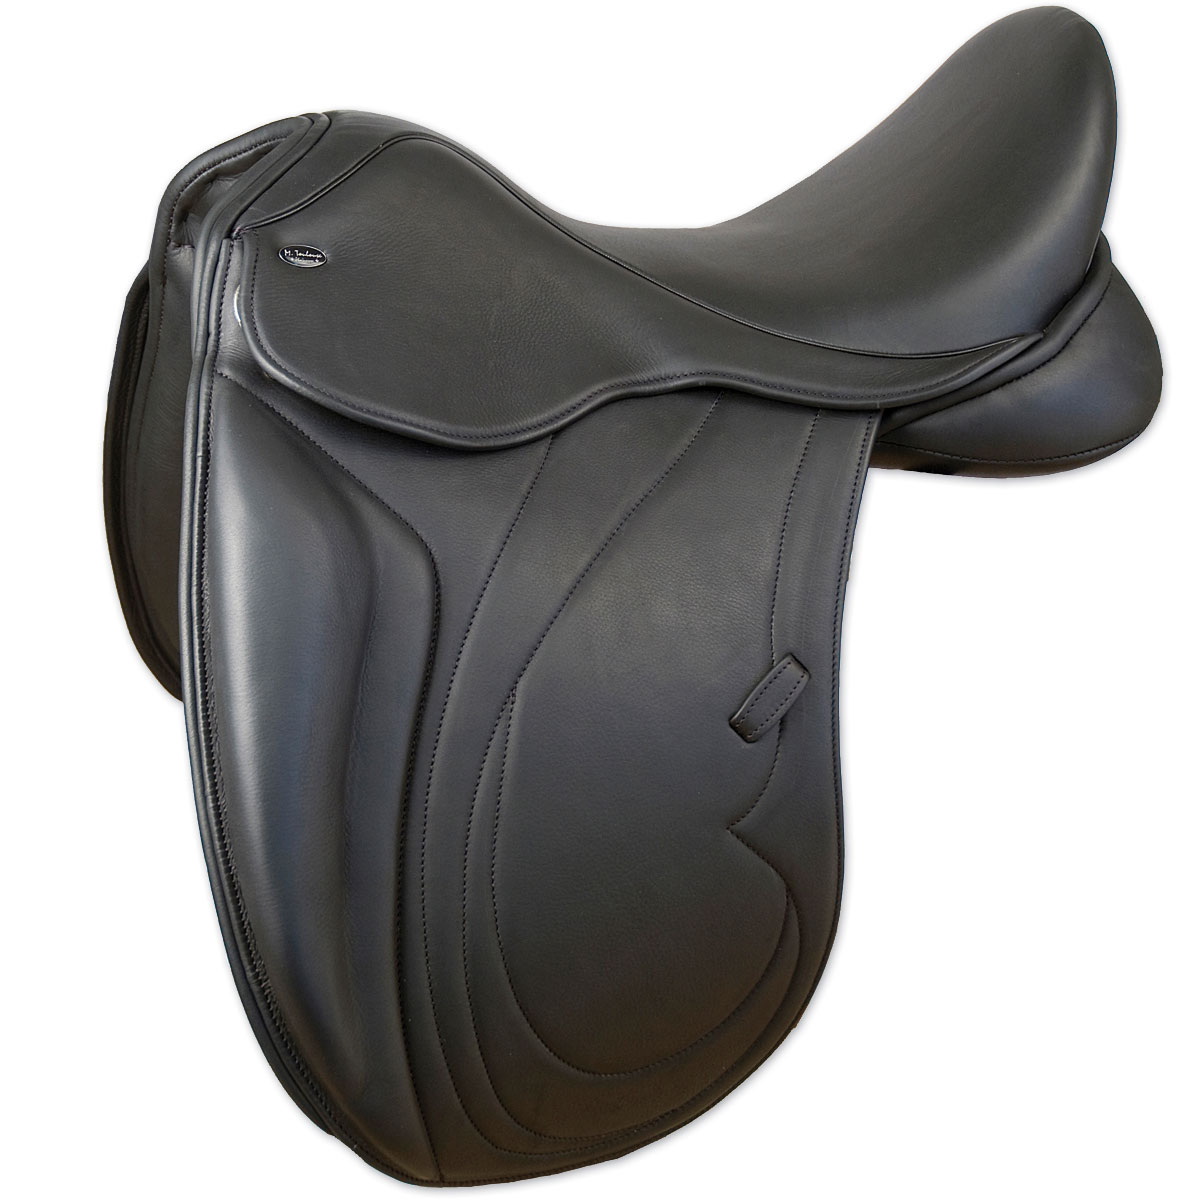 M. Toulouse Alyssa Platinum Dressage Saddle with Genesis System